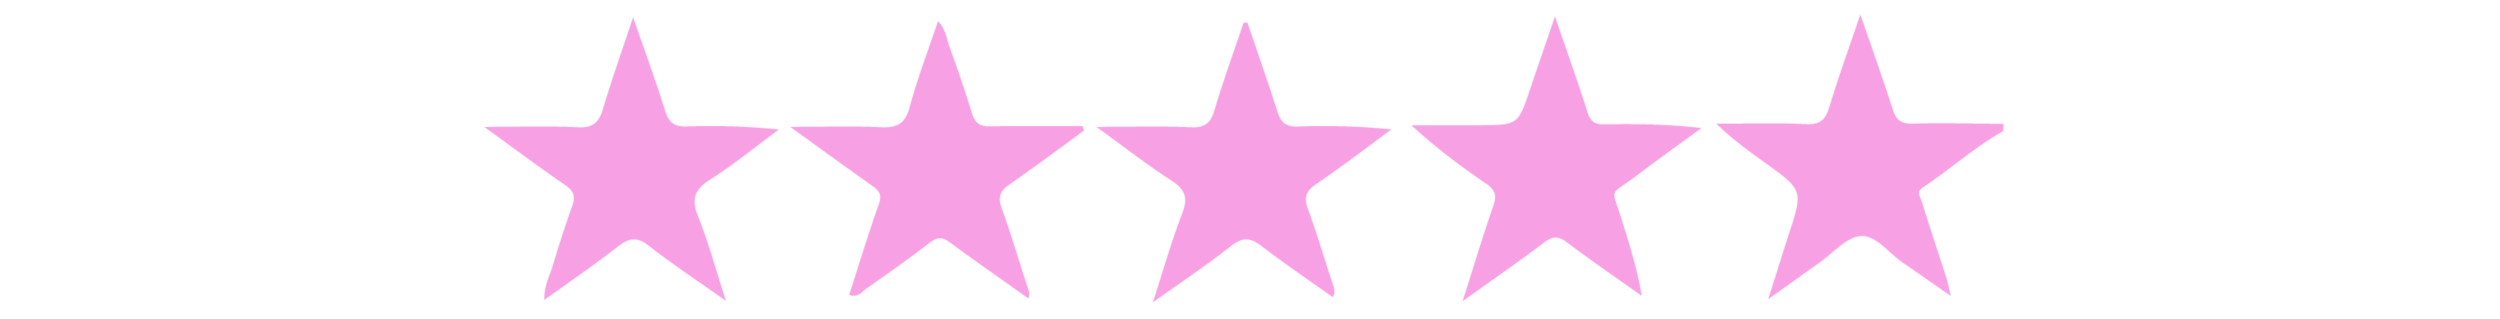 5 star-29.png